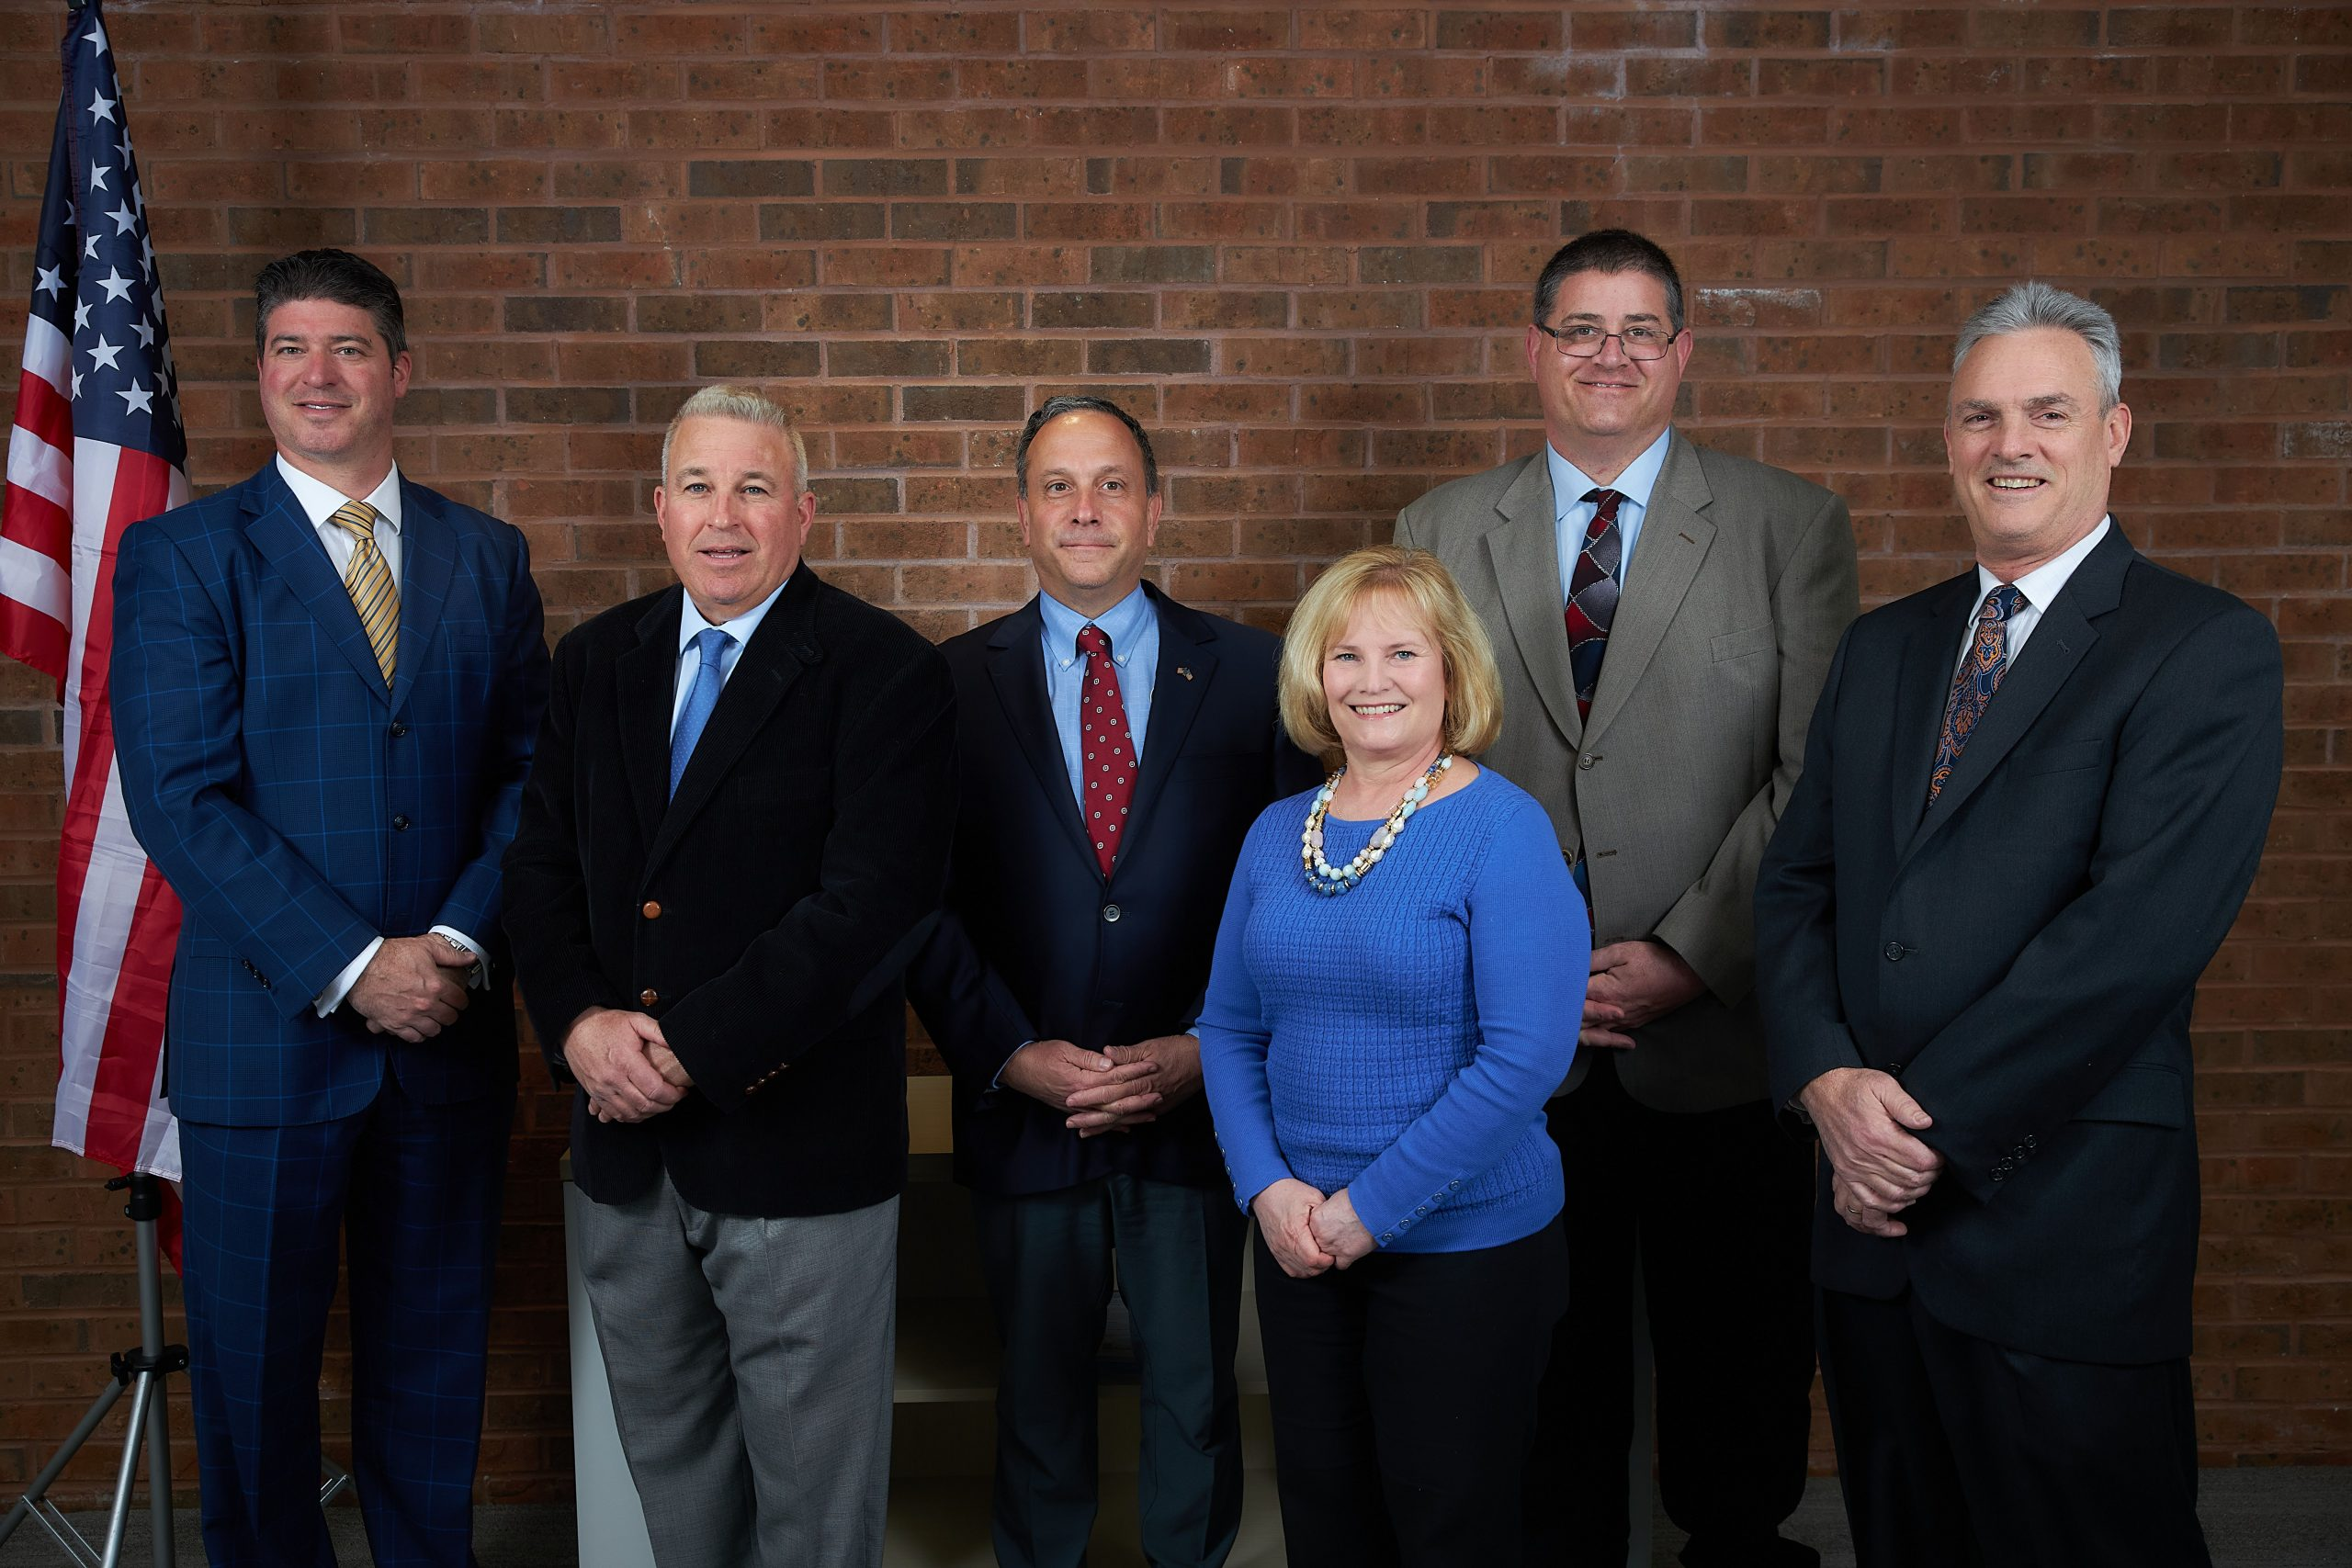 Northampton Township Republican Committee For Honesty & Integrity